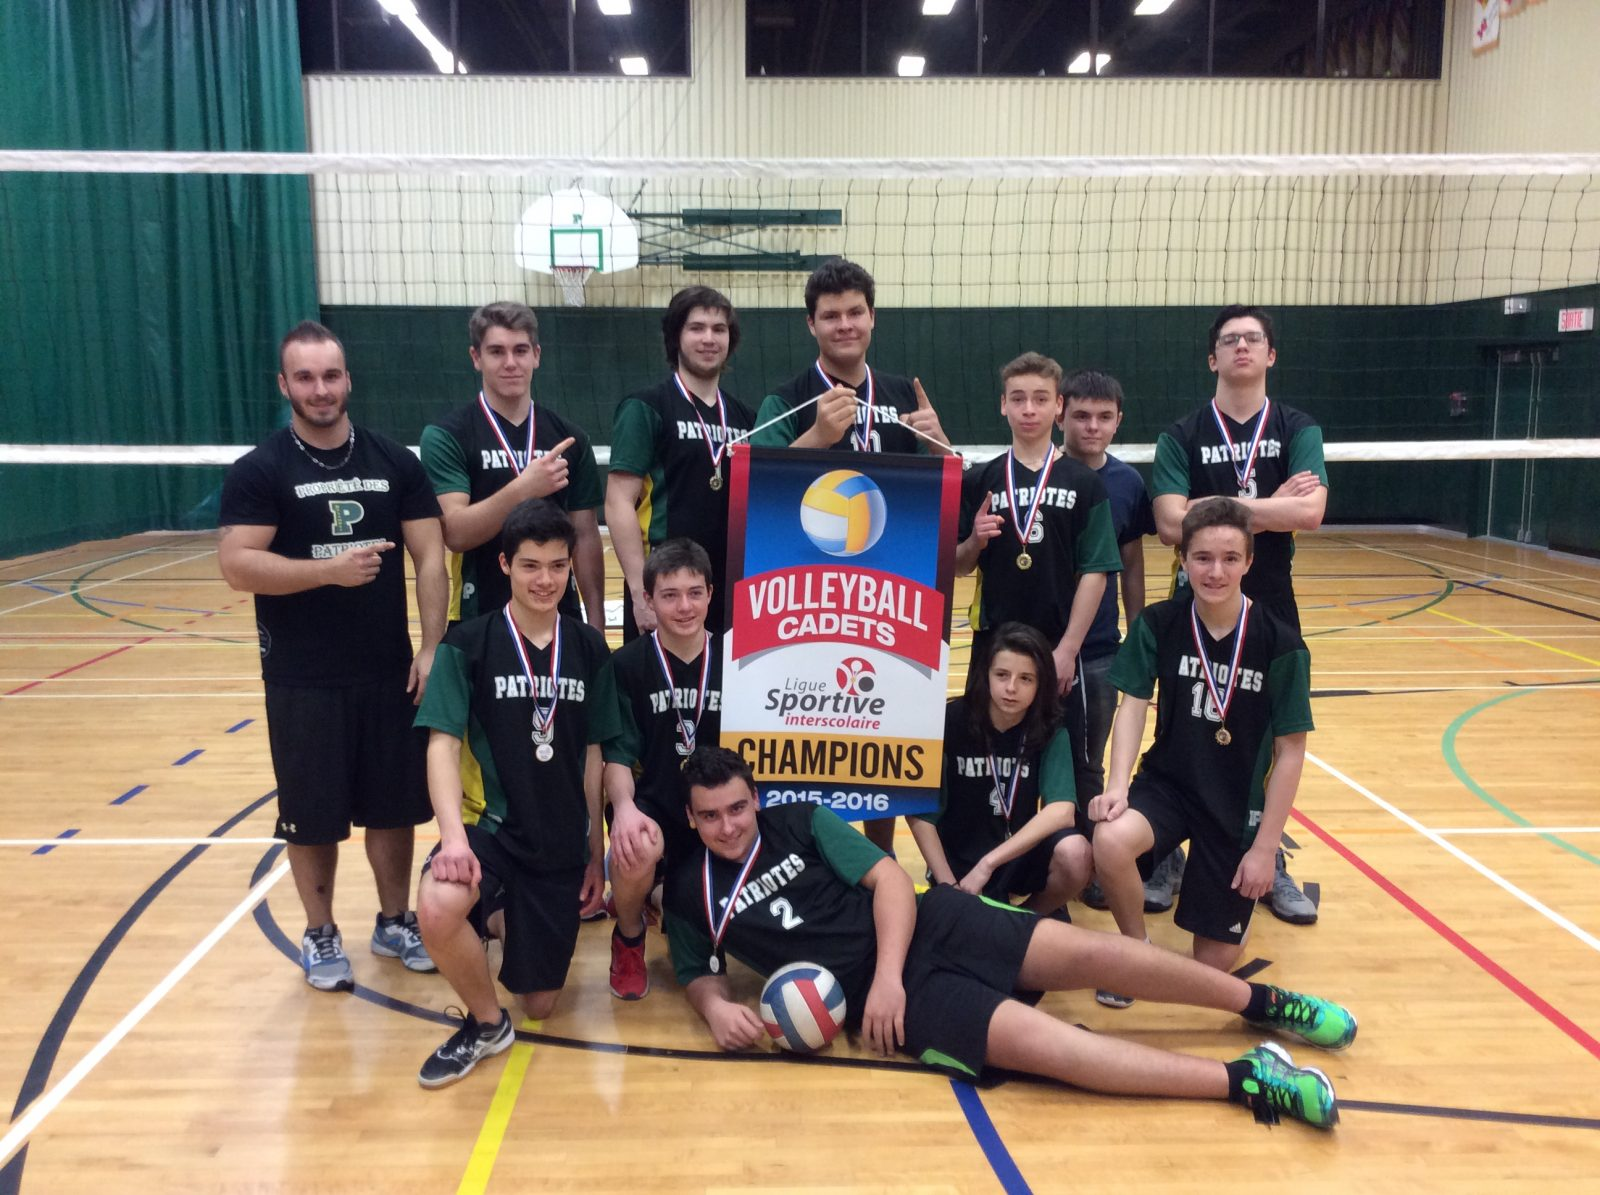 Les Patriotes cadets gagnent l'or en volleyball masculin